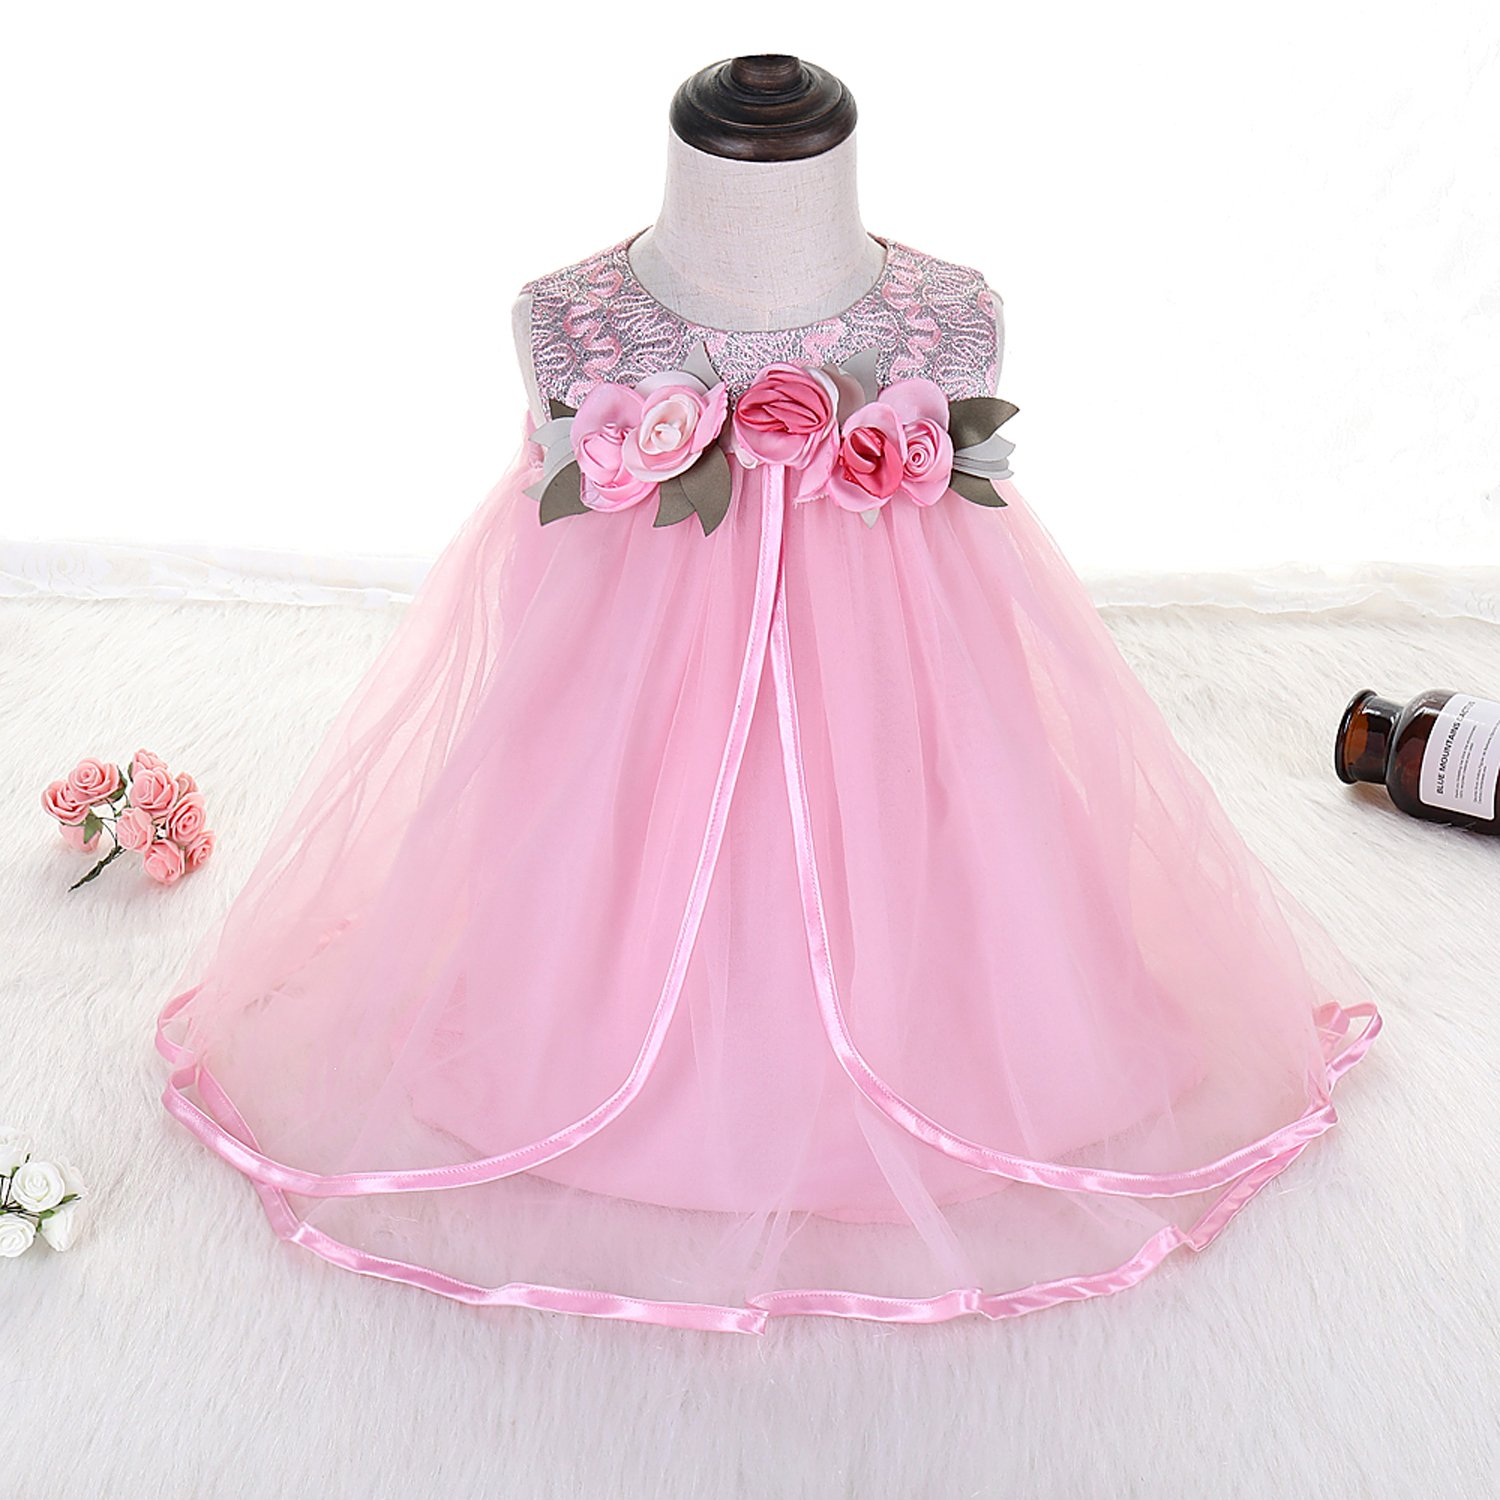 b5389c342fc4 Amazon.com: Baby Girl Wedding Dresses Pink Embroidery Lace Tutu Dress with  Flower and Leaves Tulle Party Dress for Infant Girl 4-5T: Clothing